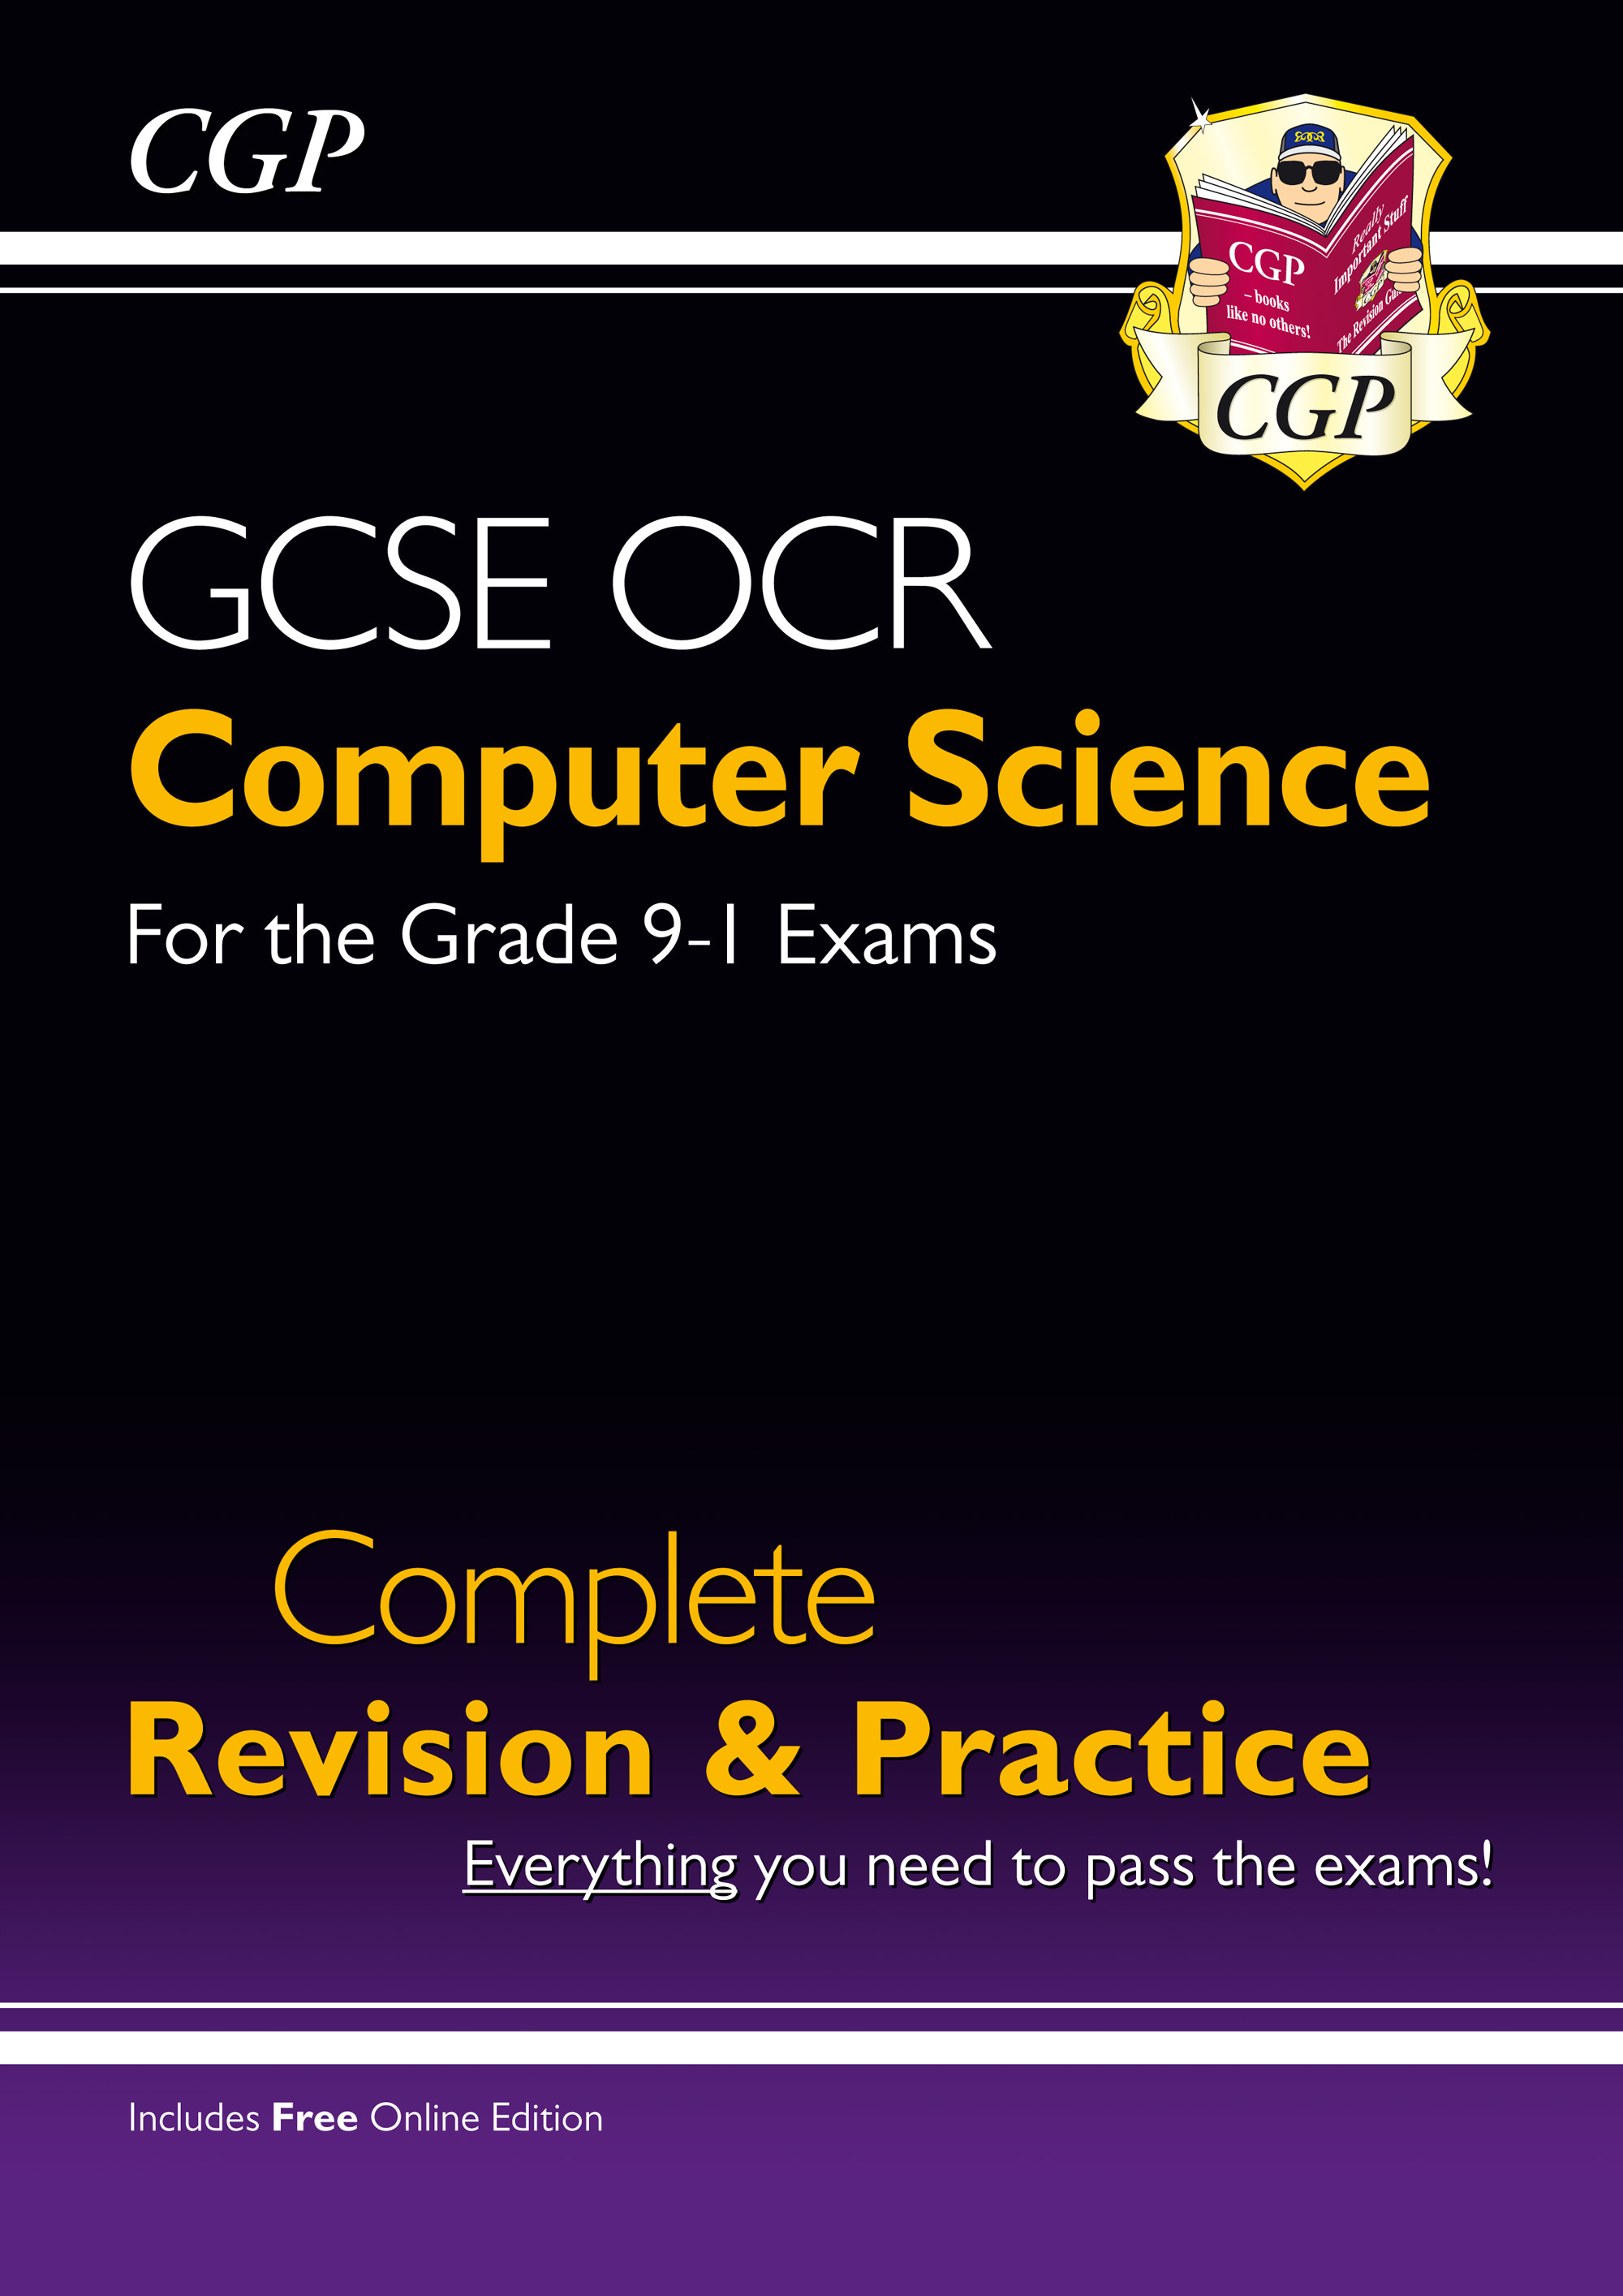 COS41 - New GCSE Computer Science OCR Complete Revision & Practice - Grade 9-1 (with Online Edition)